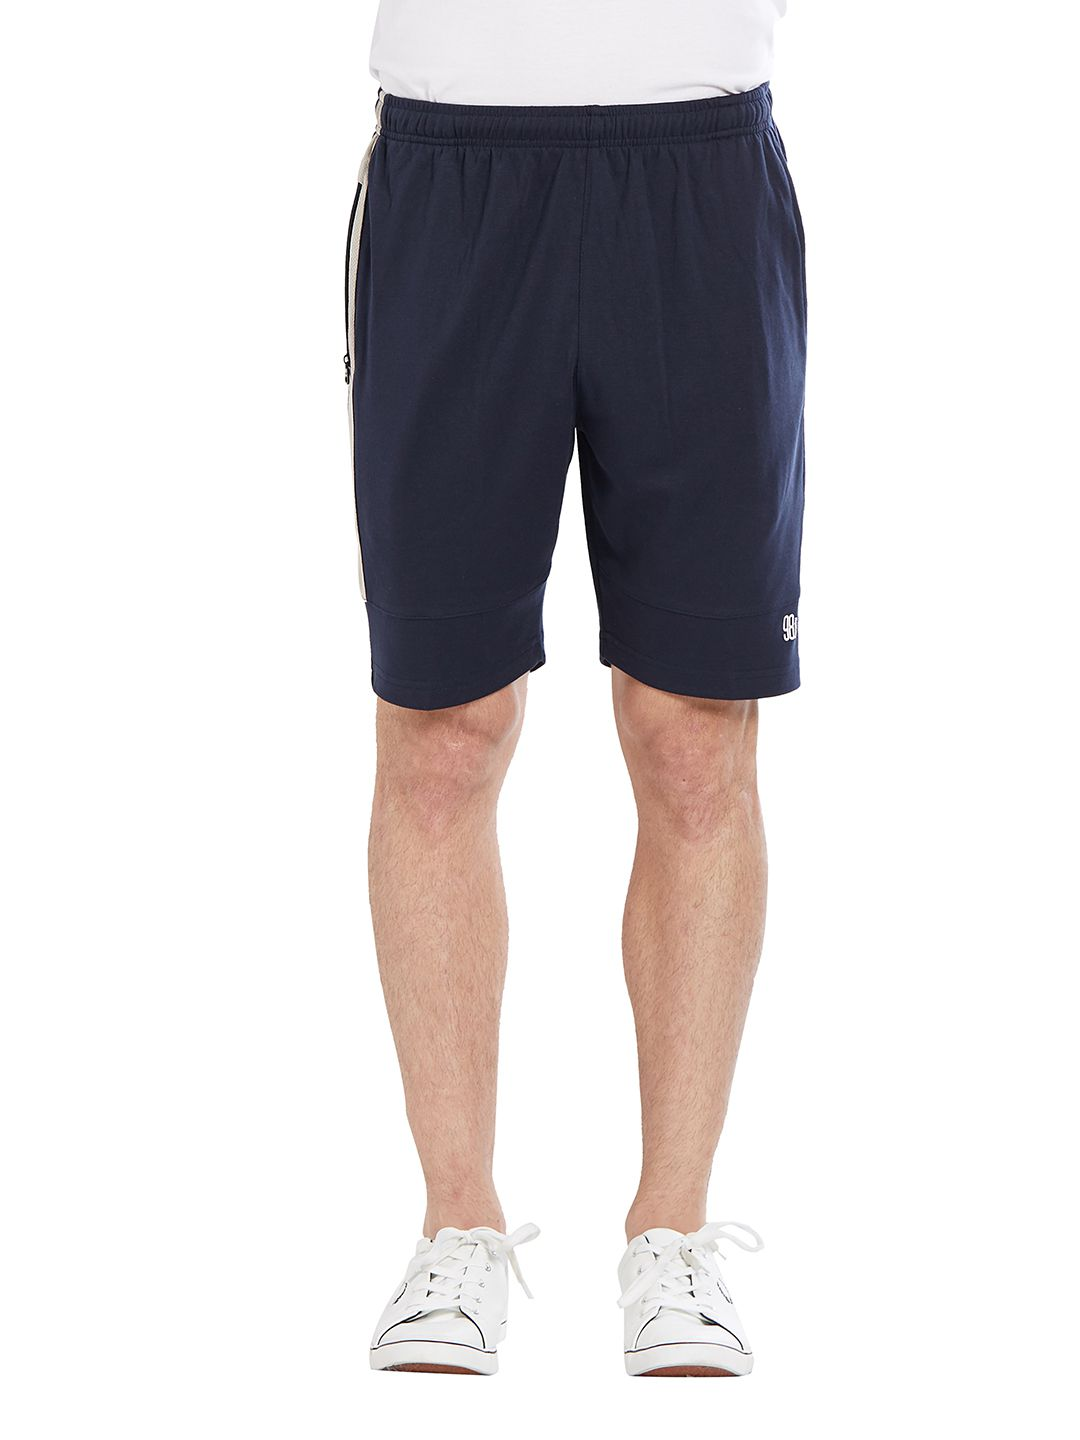 BONATY Navy Blue Blended Cotton Solid  Shorts For Men